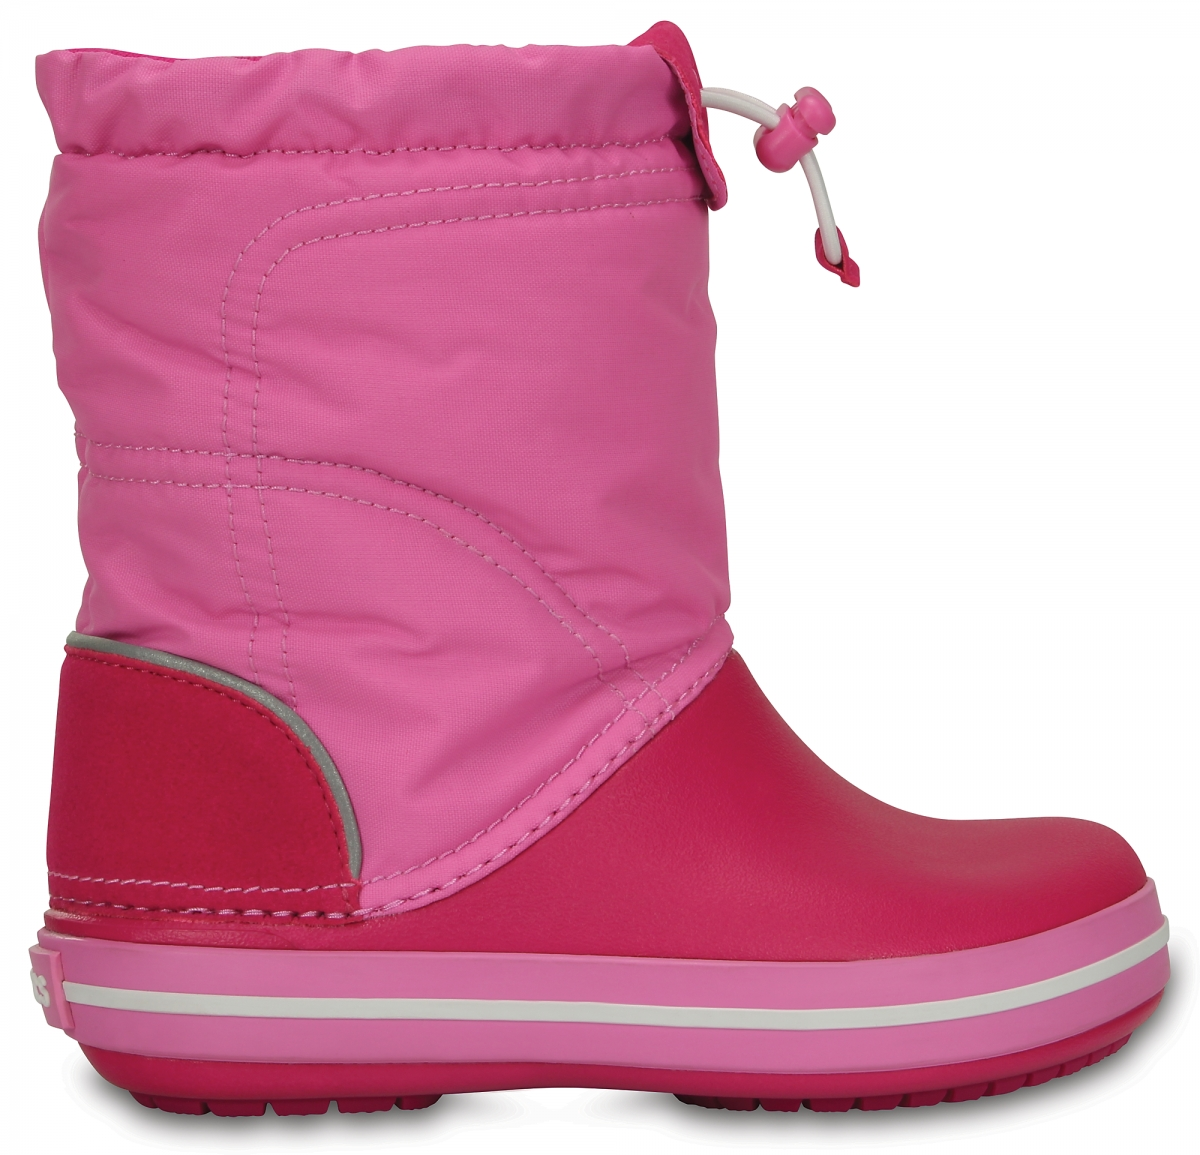 Crocs Crocband LodgePoint Boot Kids Candy Pink/Party Pink, C11 (28-29)